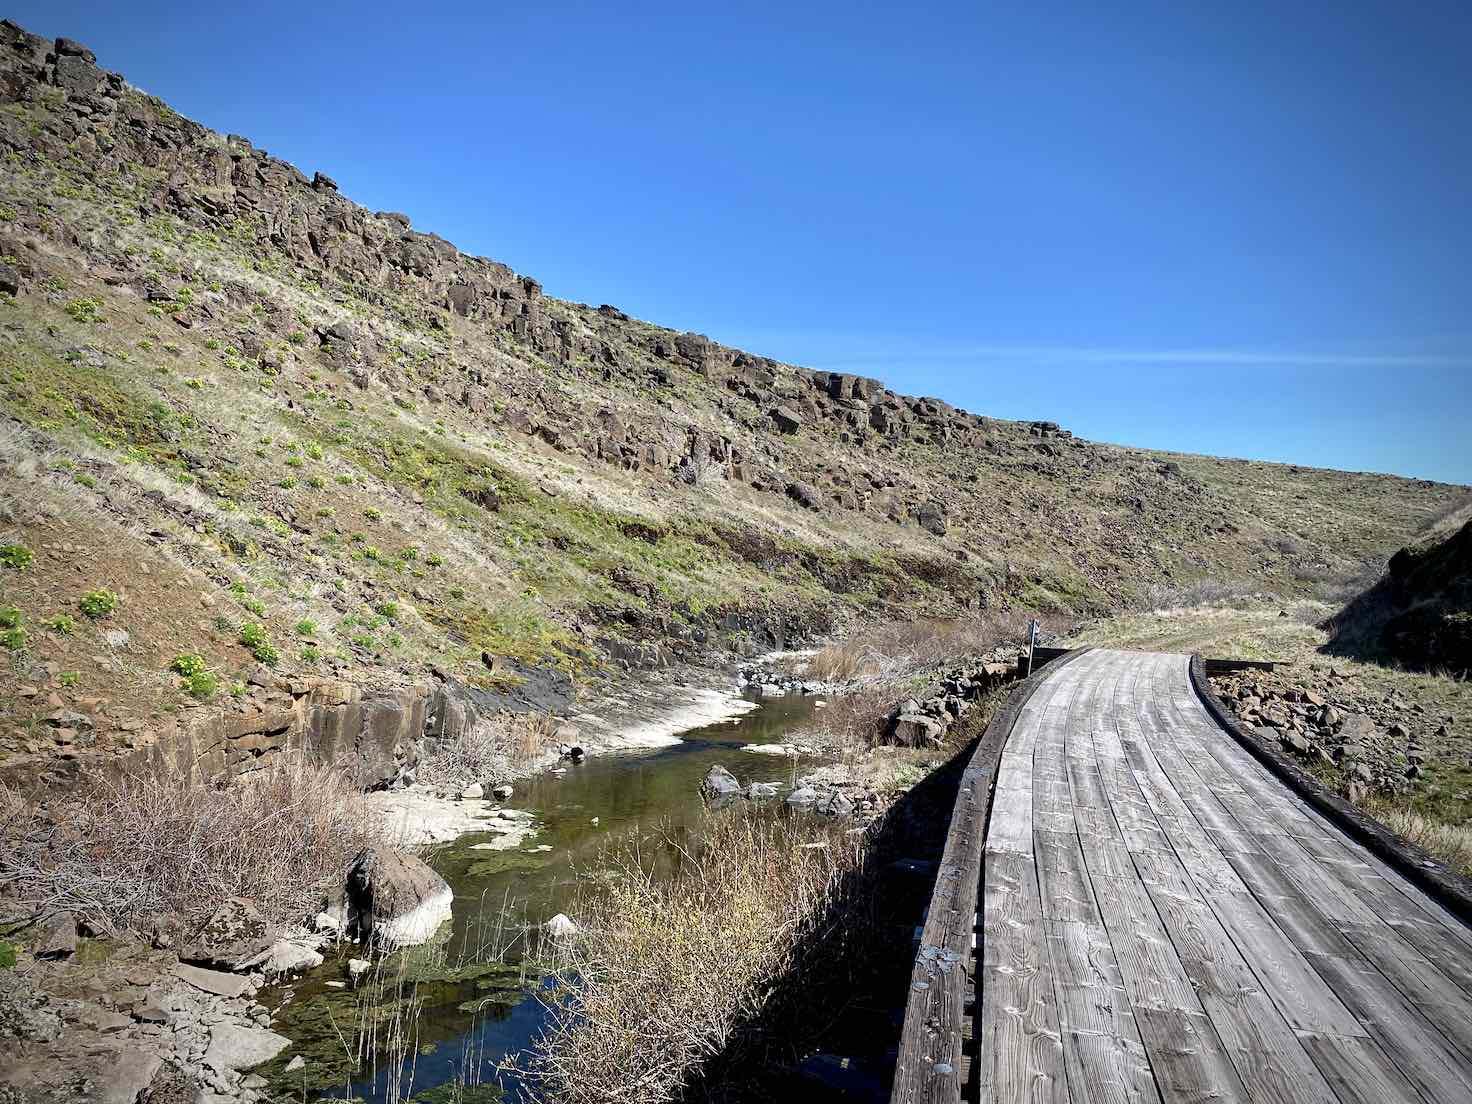 One of the filled in trestle bridges along the Swale Canyon trail near Goldendale, WA.